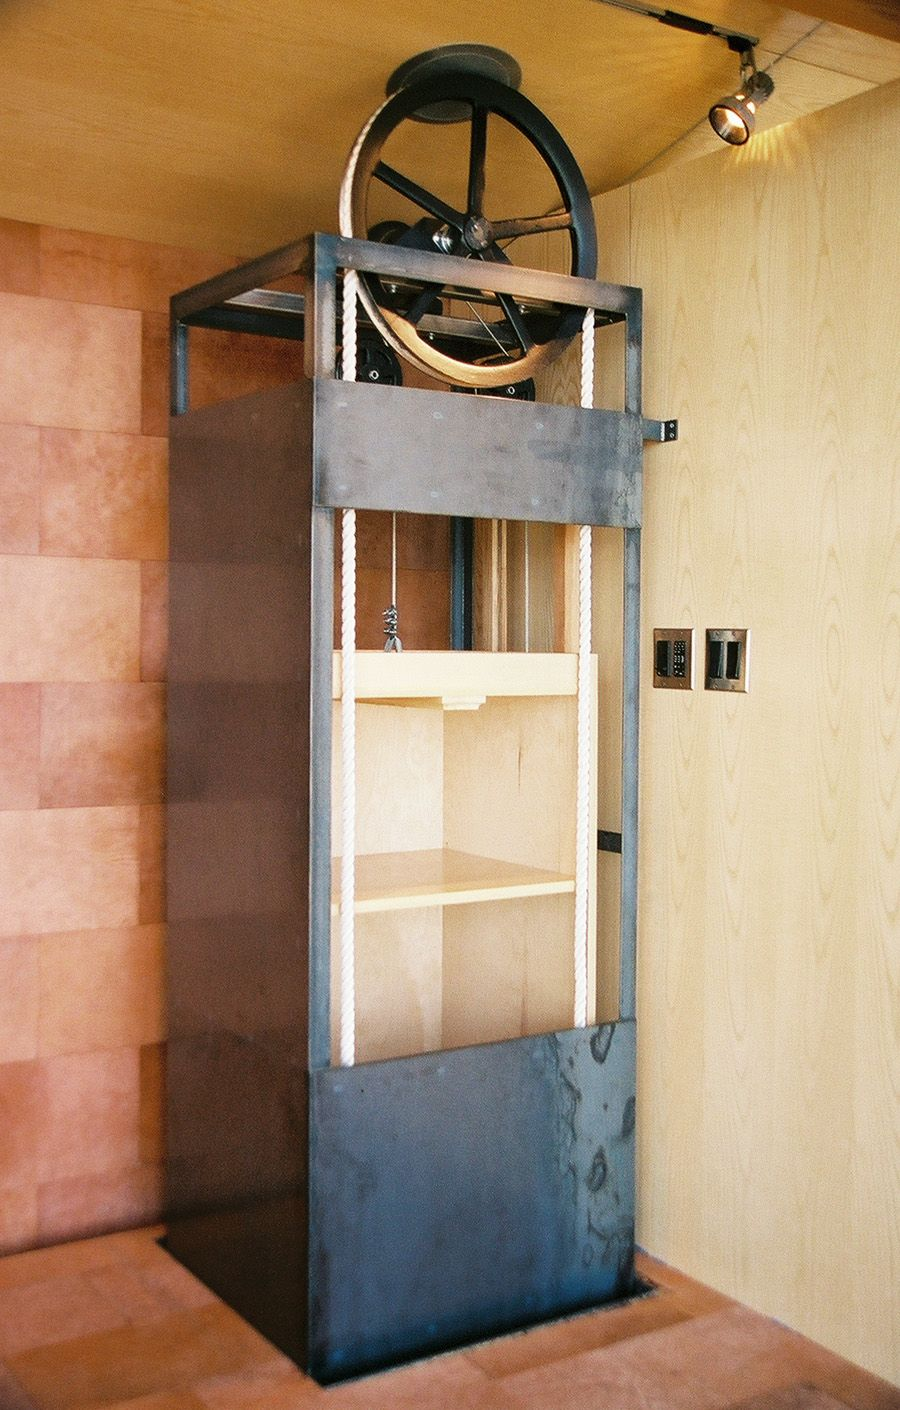 Building a manual dumbwaiter lift kit reviews